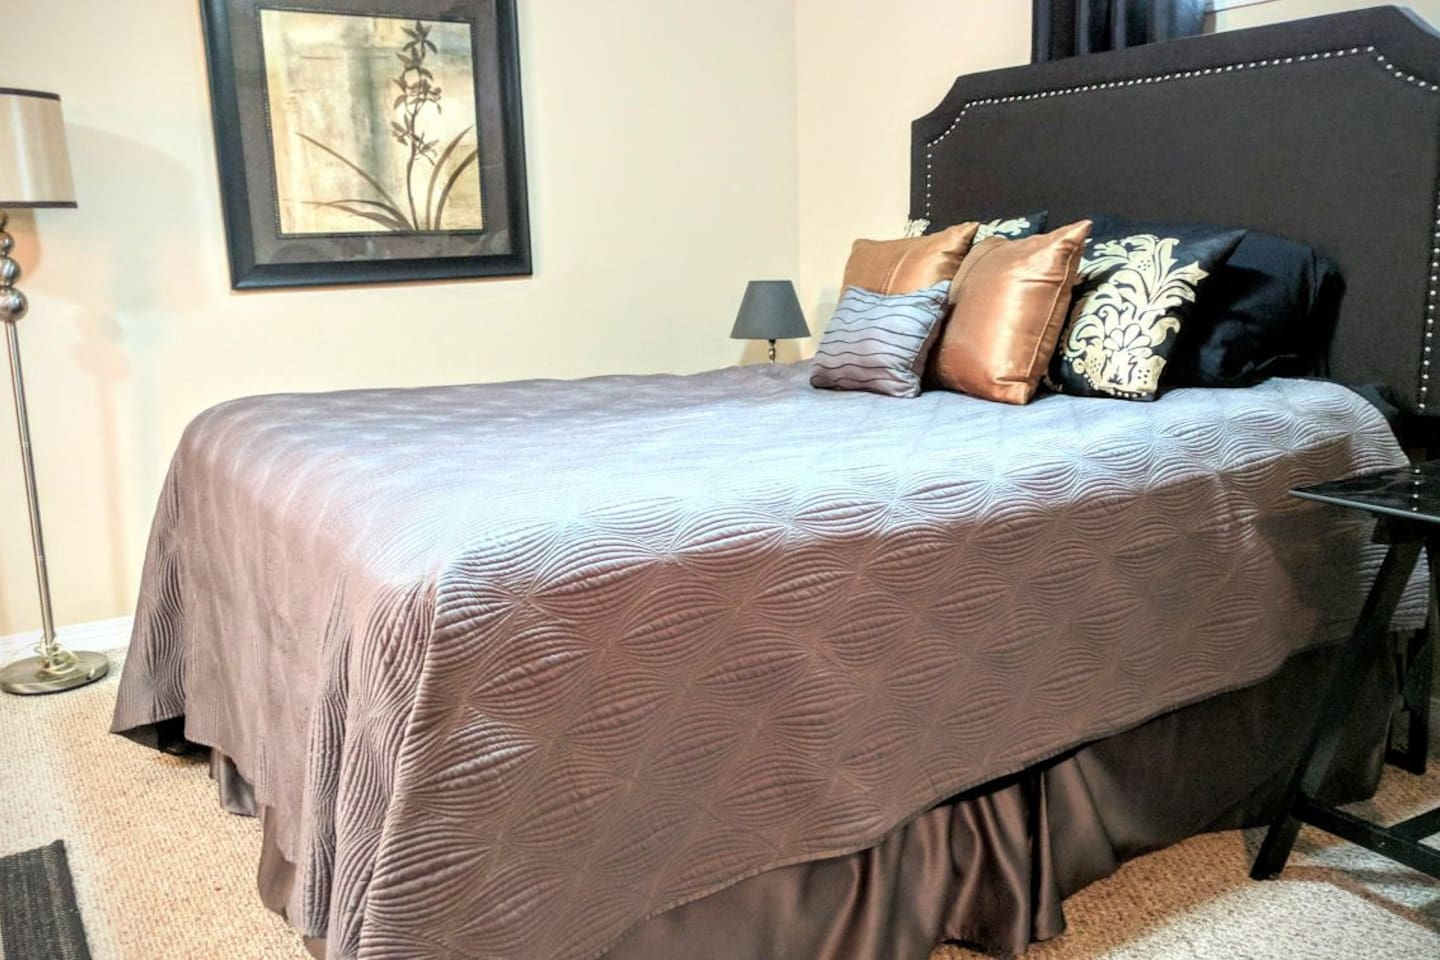 Oversized comfy queen bed with luxurious linens